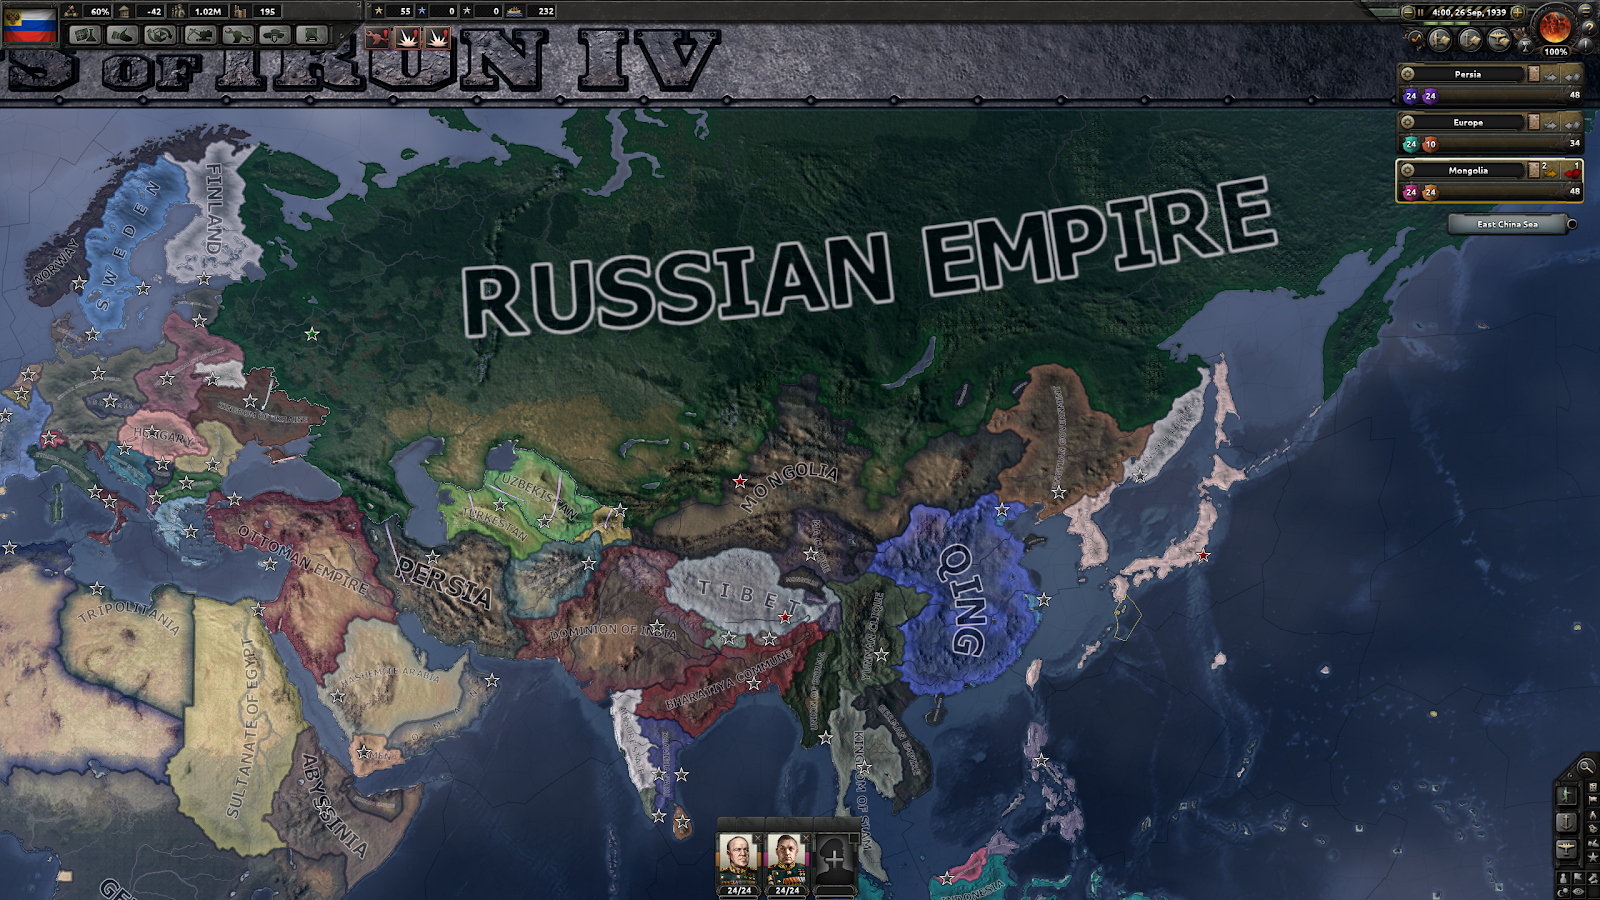 taw's gaming: Kaiserreich Russia